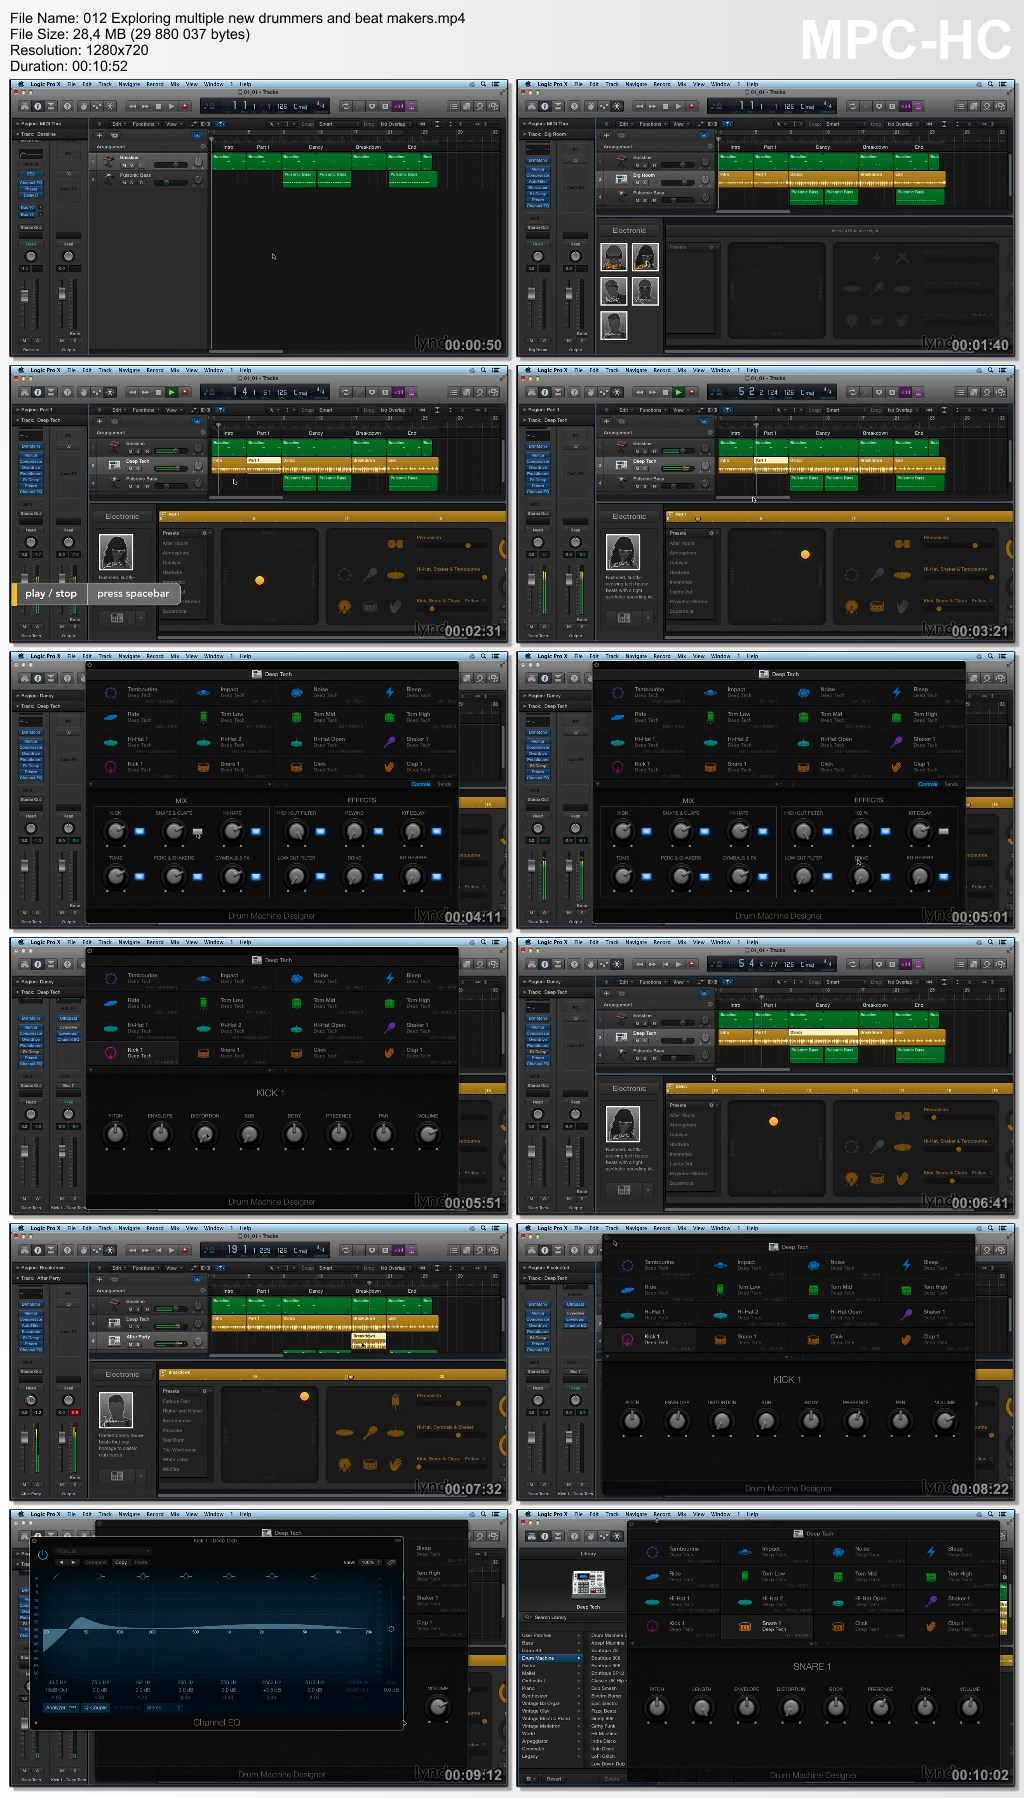 Logic Pro X New Features (updated Sep 08, 2015)